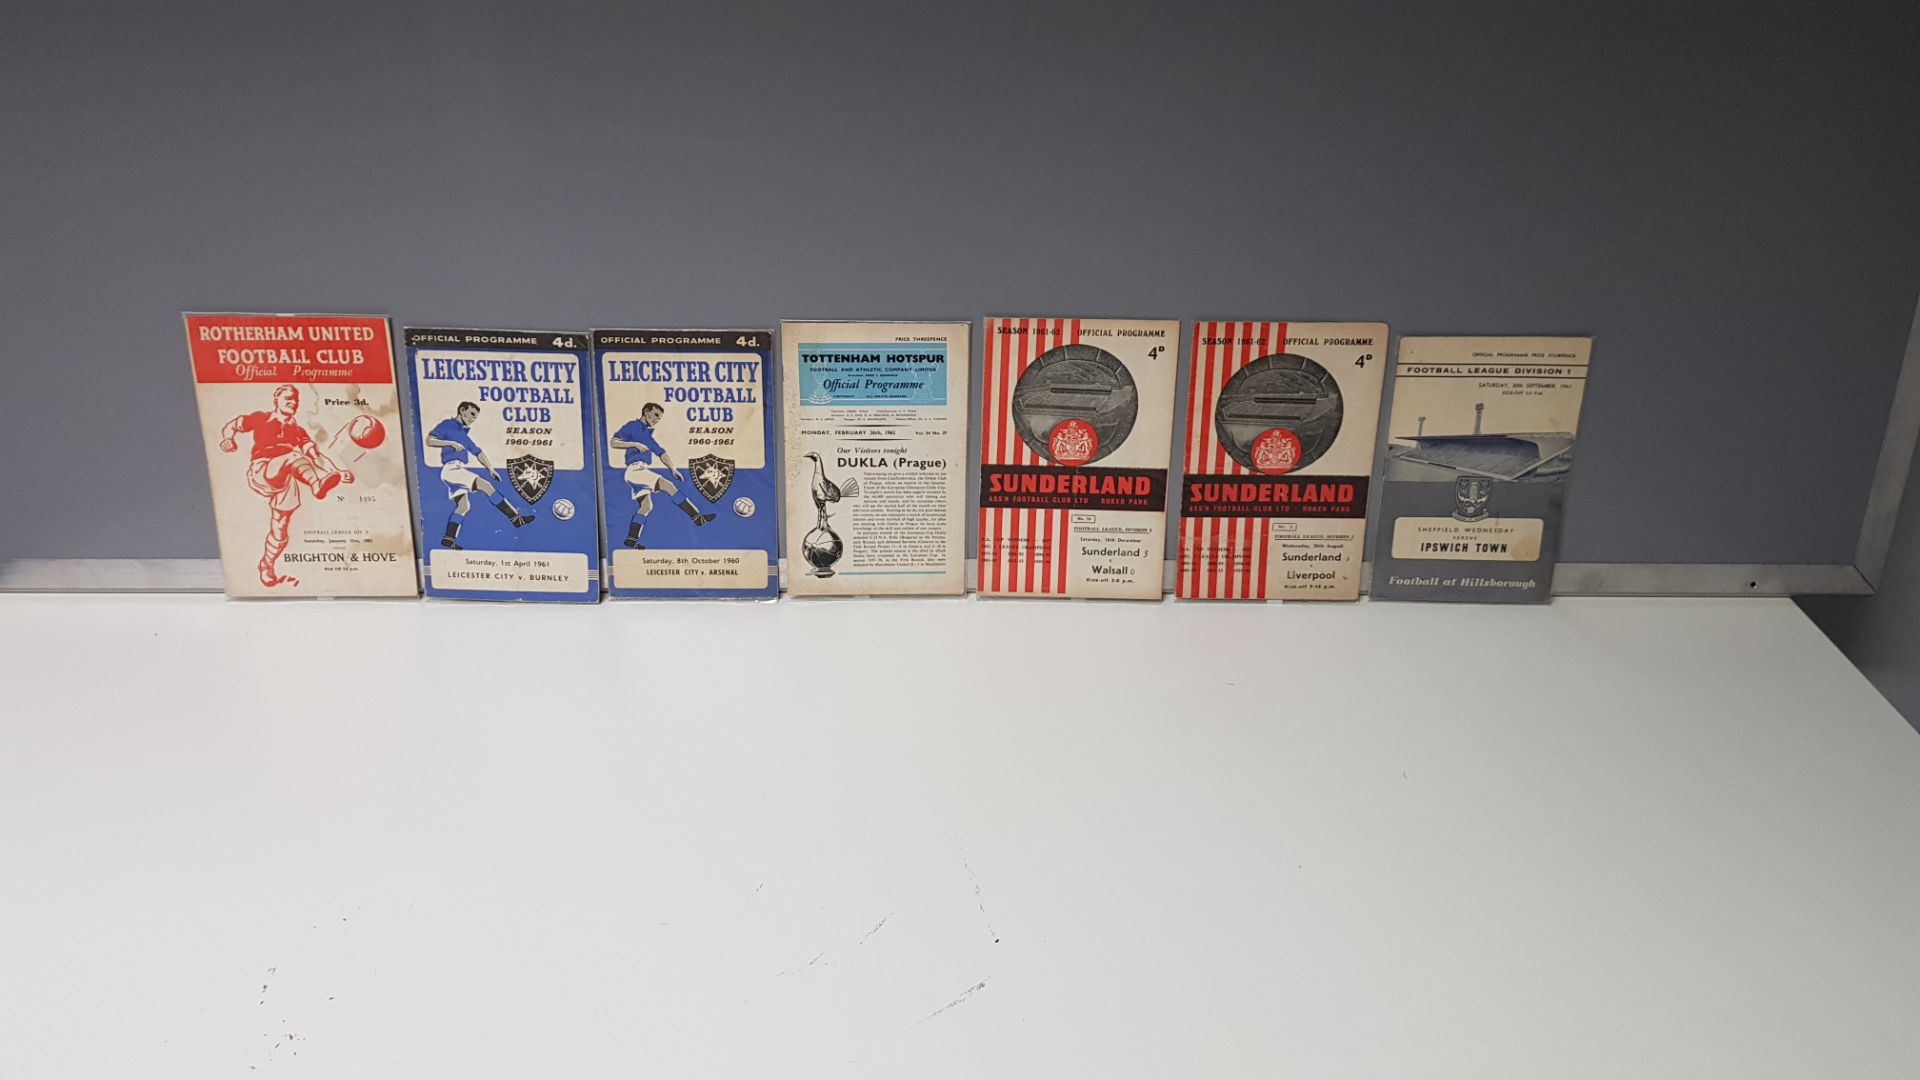 7 X OTHER CLUB PROGRAMMES IN VERY GOOD CONDITION TO INCLUDE - SHEFFIELD WED VS IPSWICH TOWN 30TH